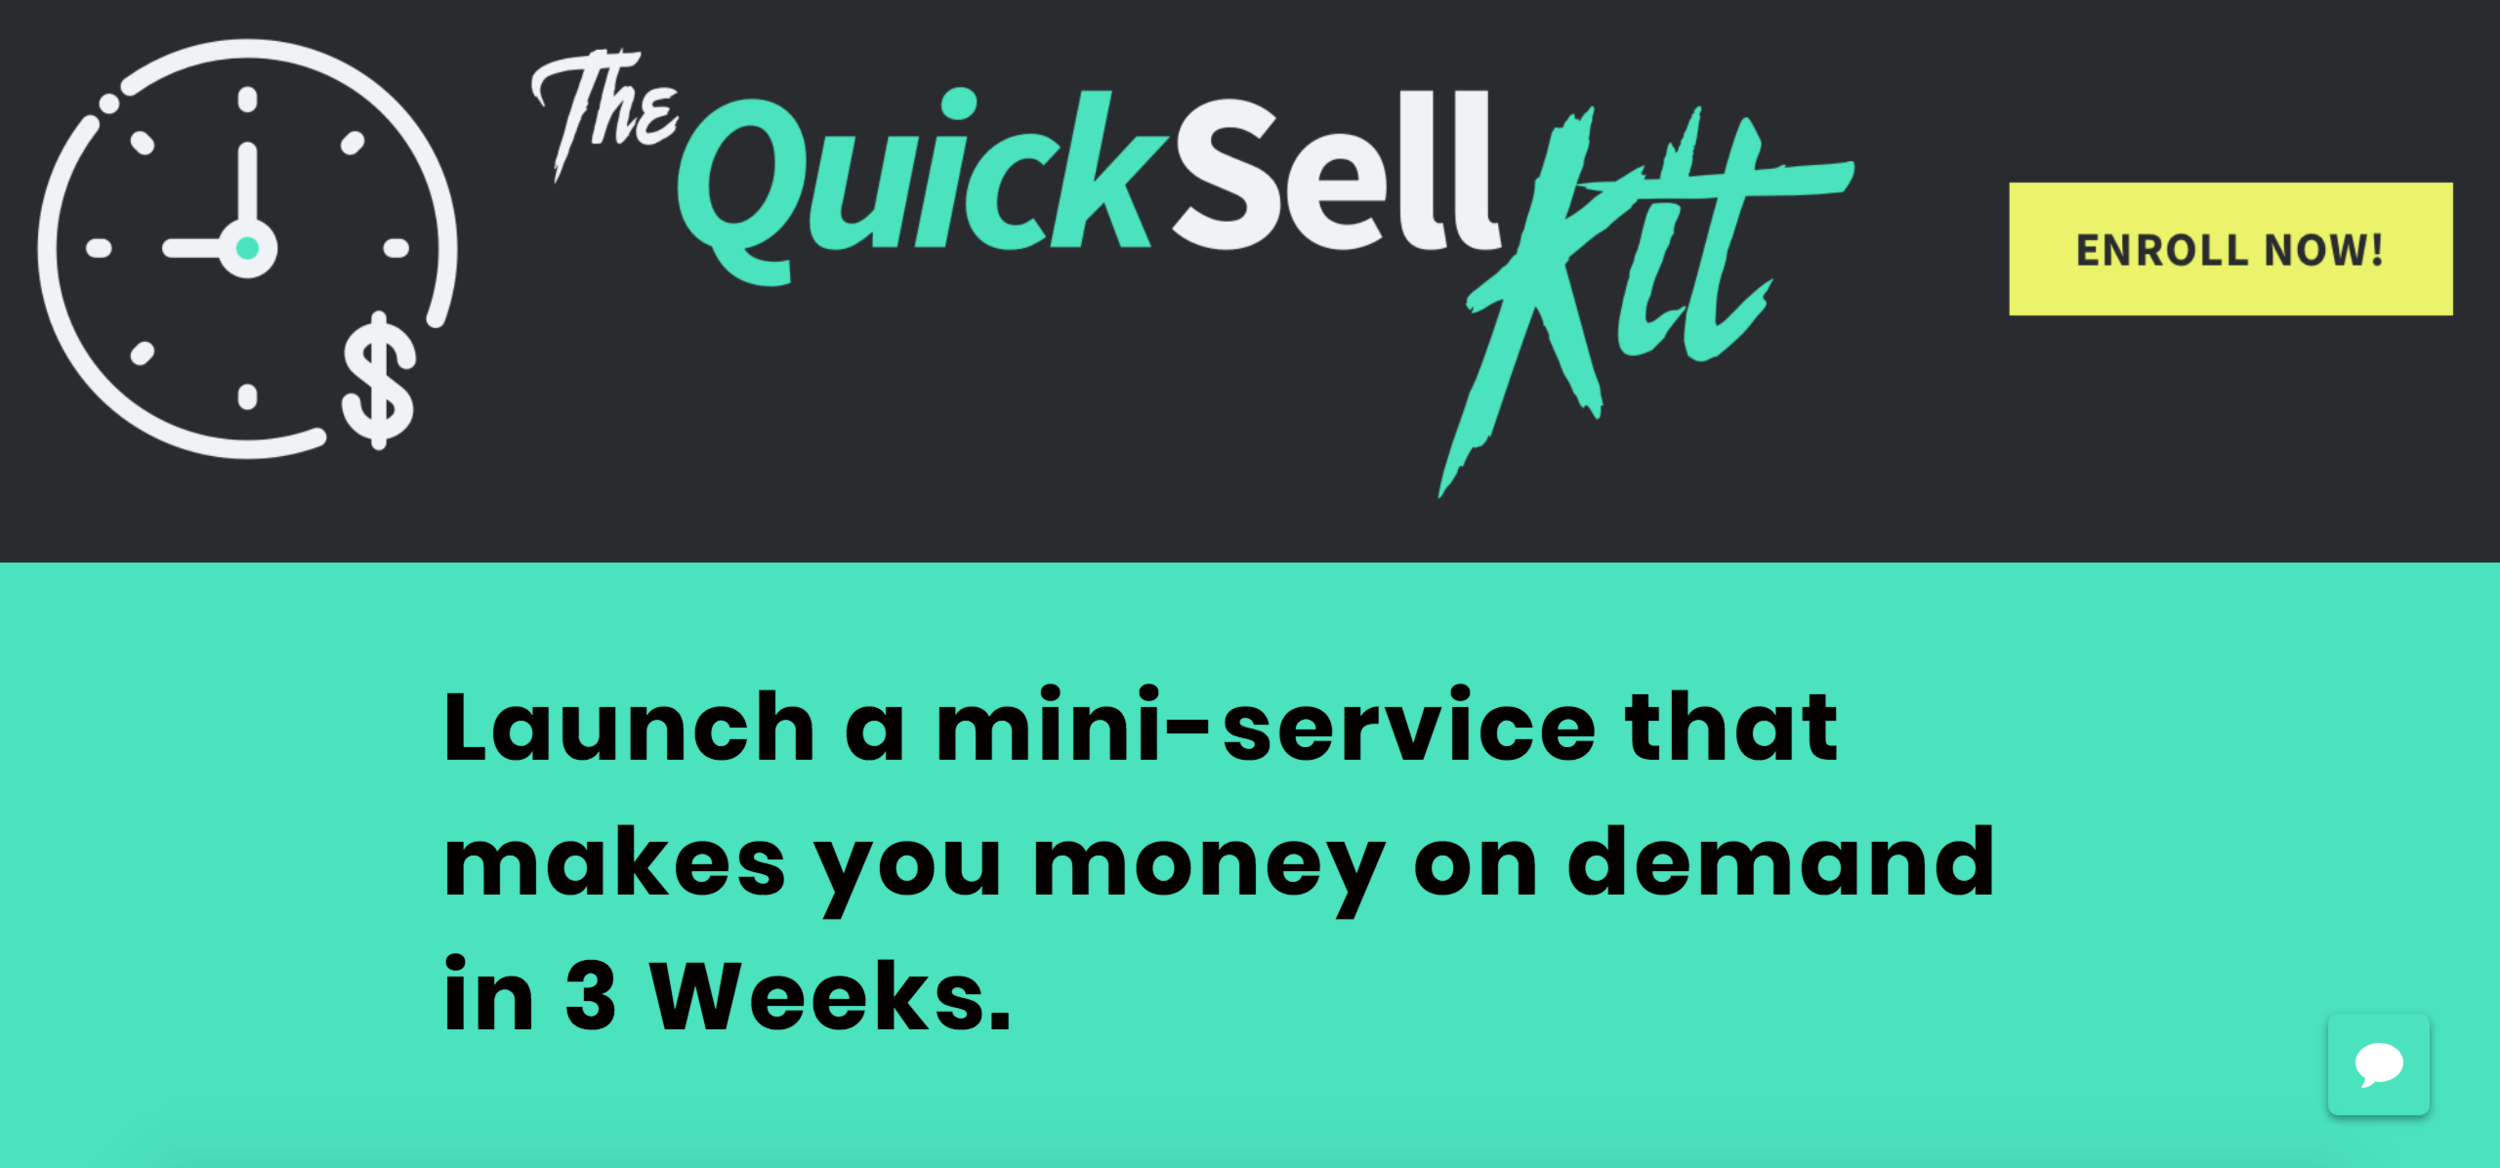 quick sell kit